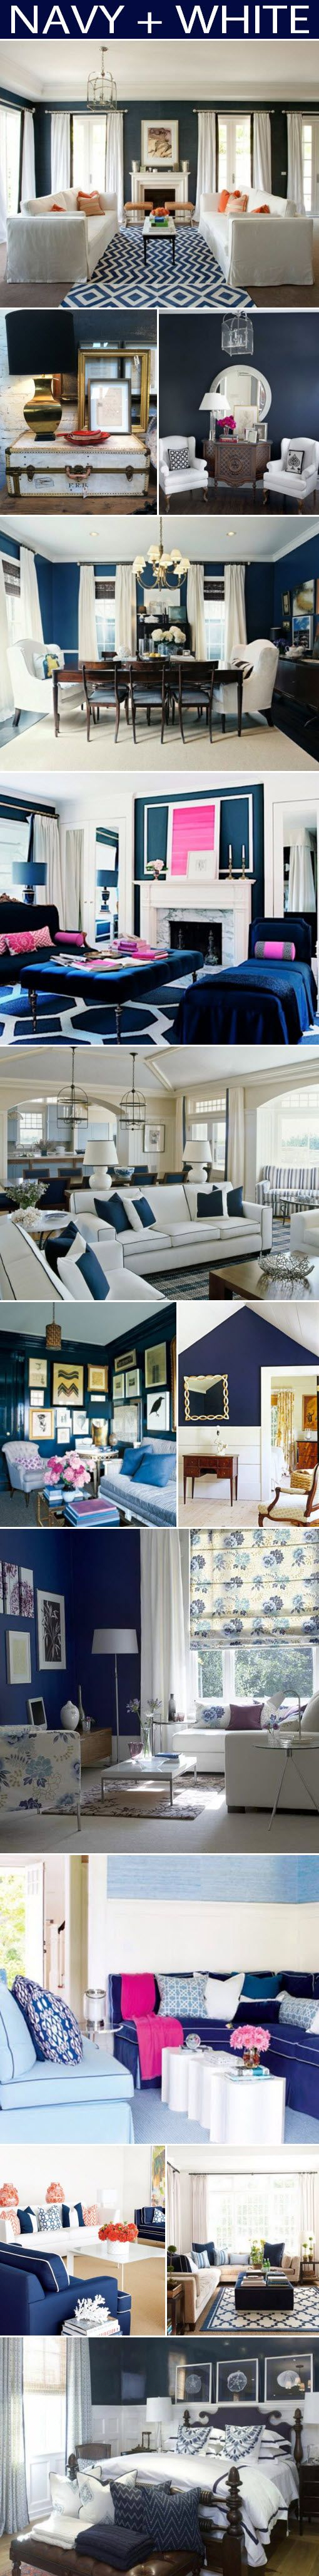 Best 25 White couches ideas on Pinterest